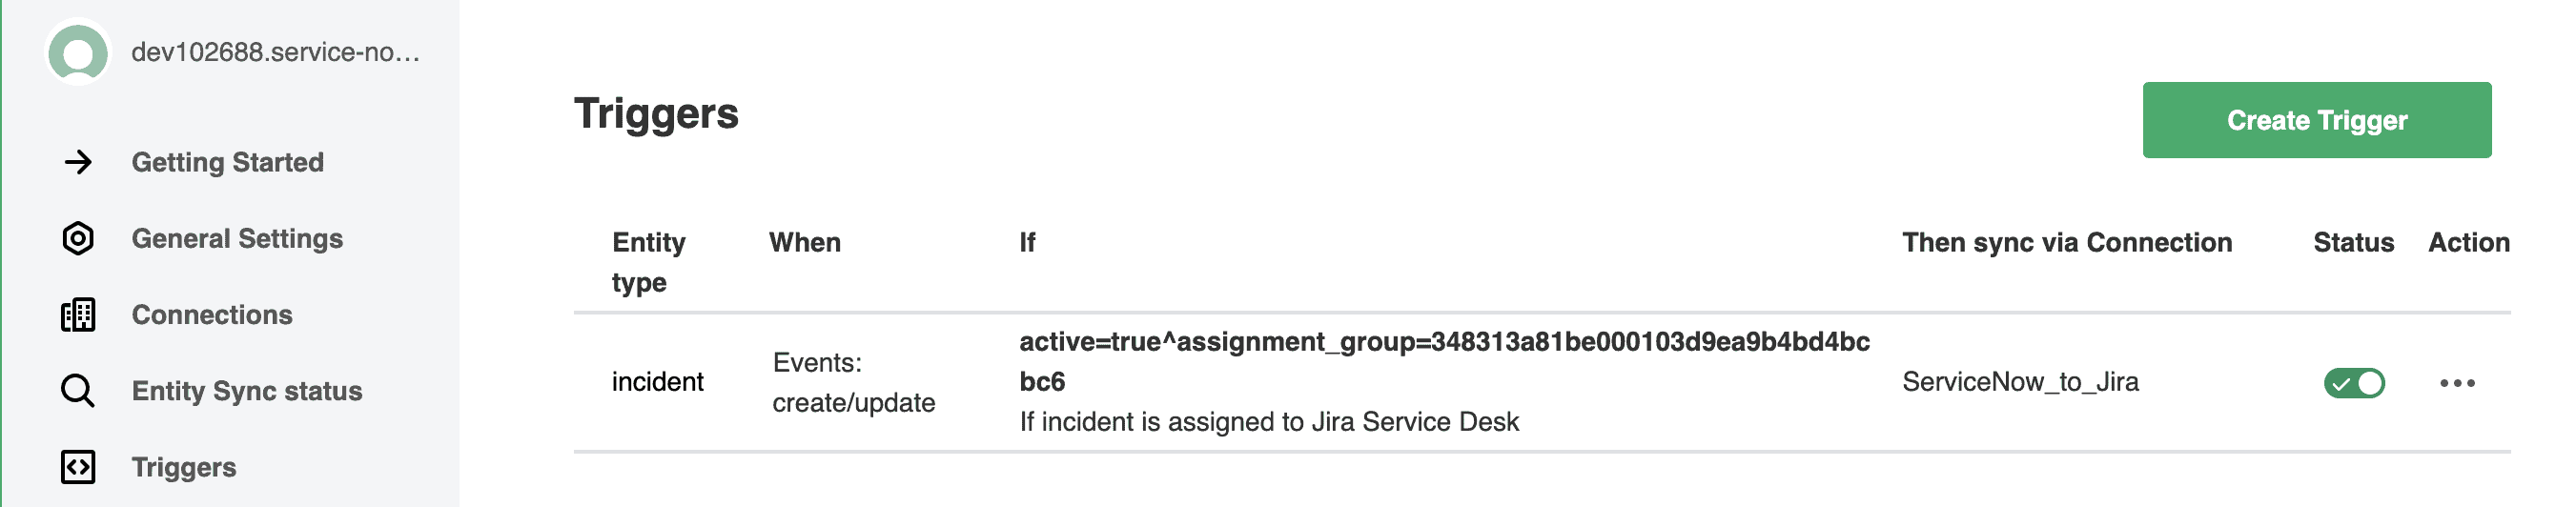 ServiceNow Jira integration trigger for ServiceNow